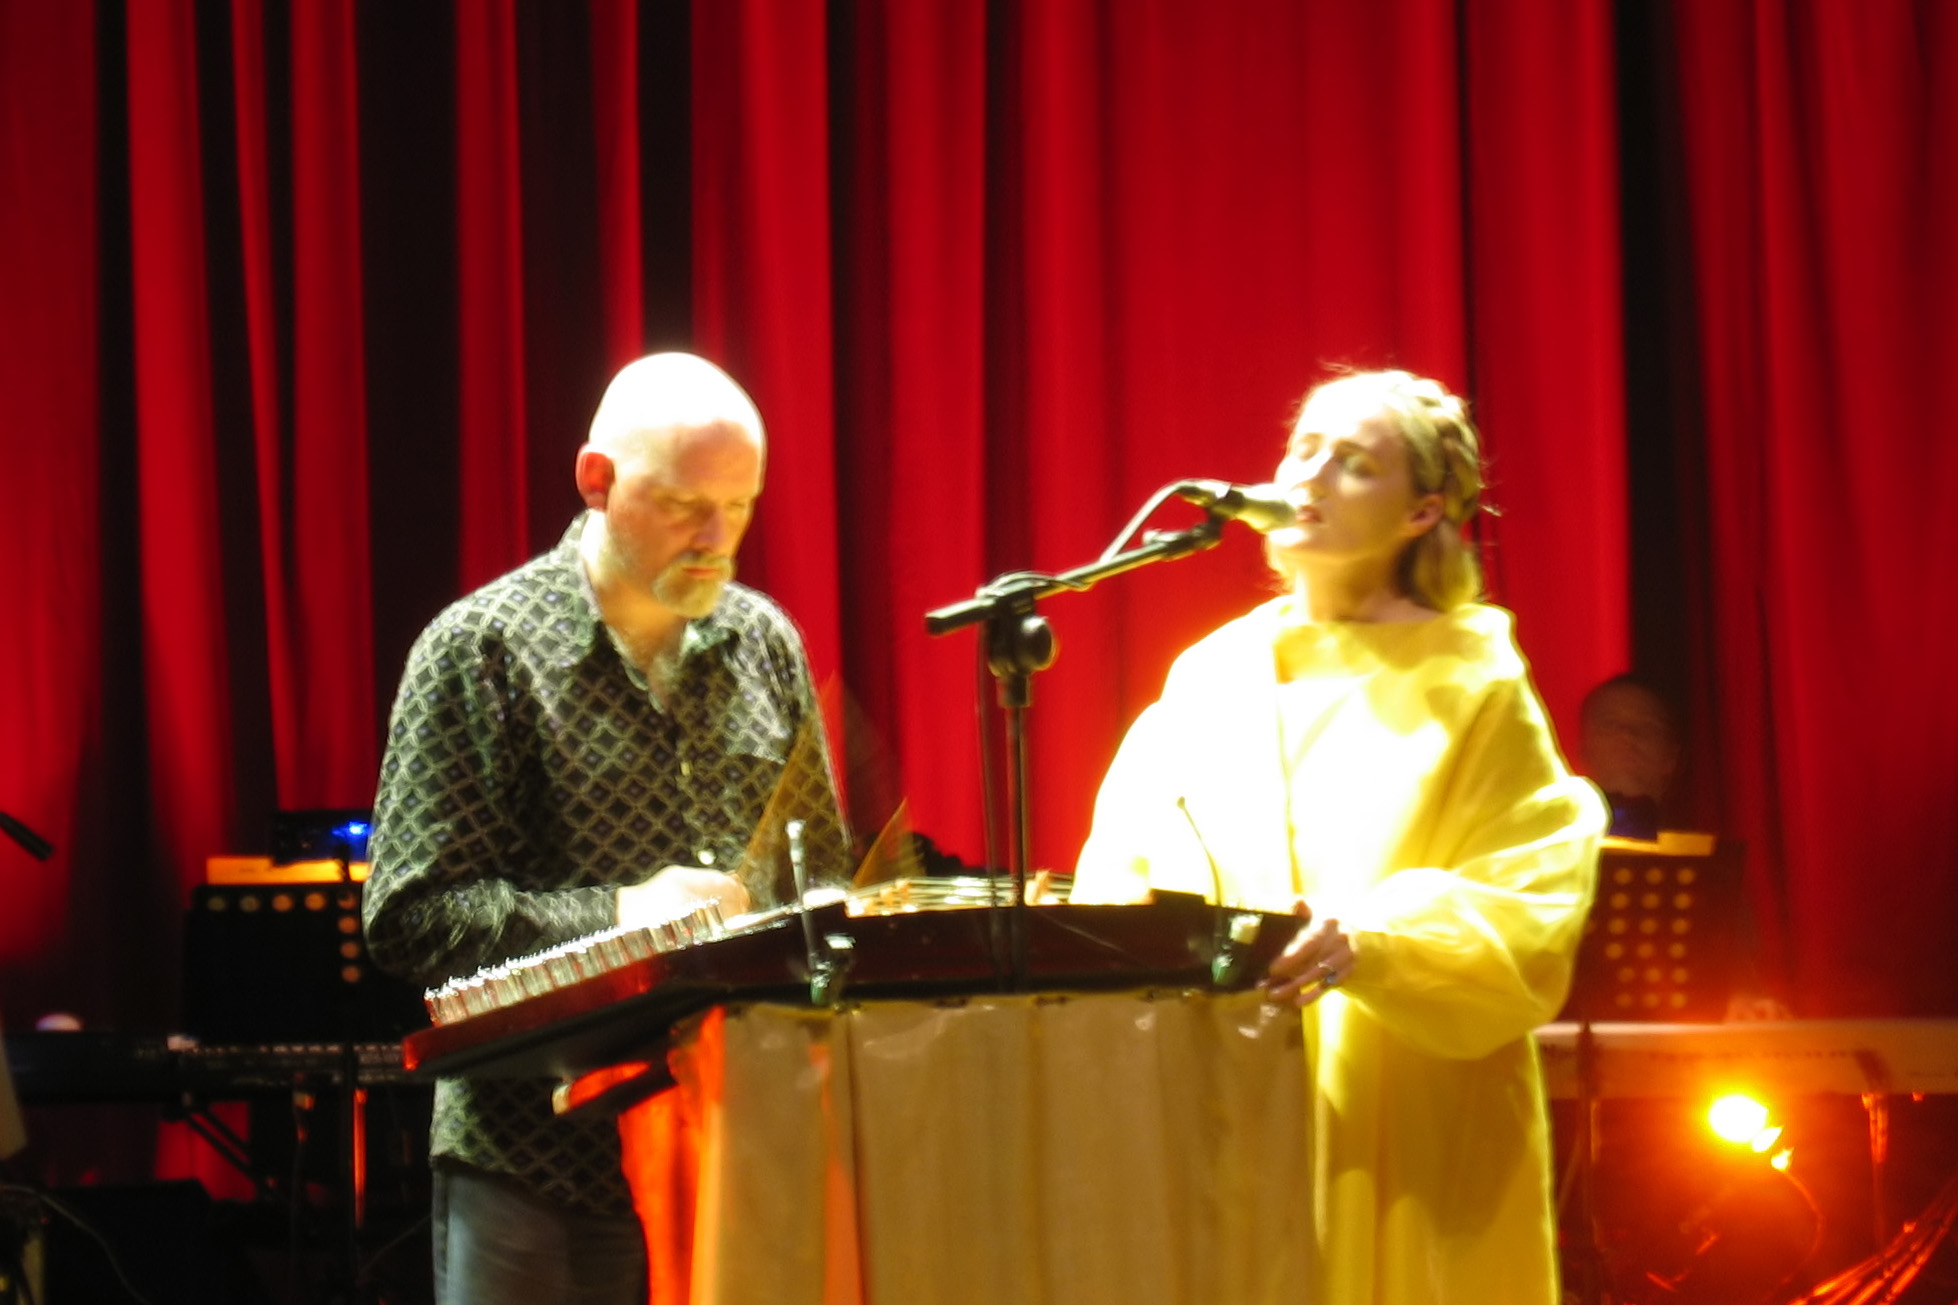 File:DeadCanDance2005C.jpg - Wikipedia ...